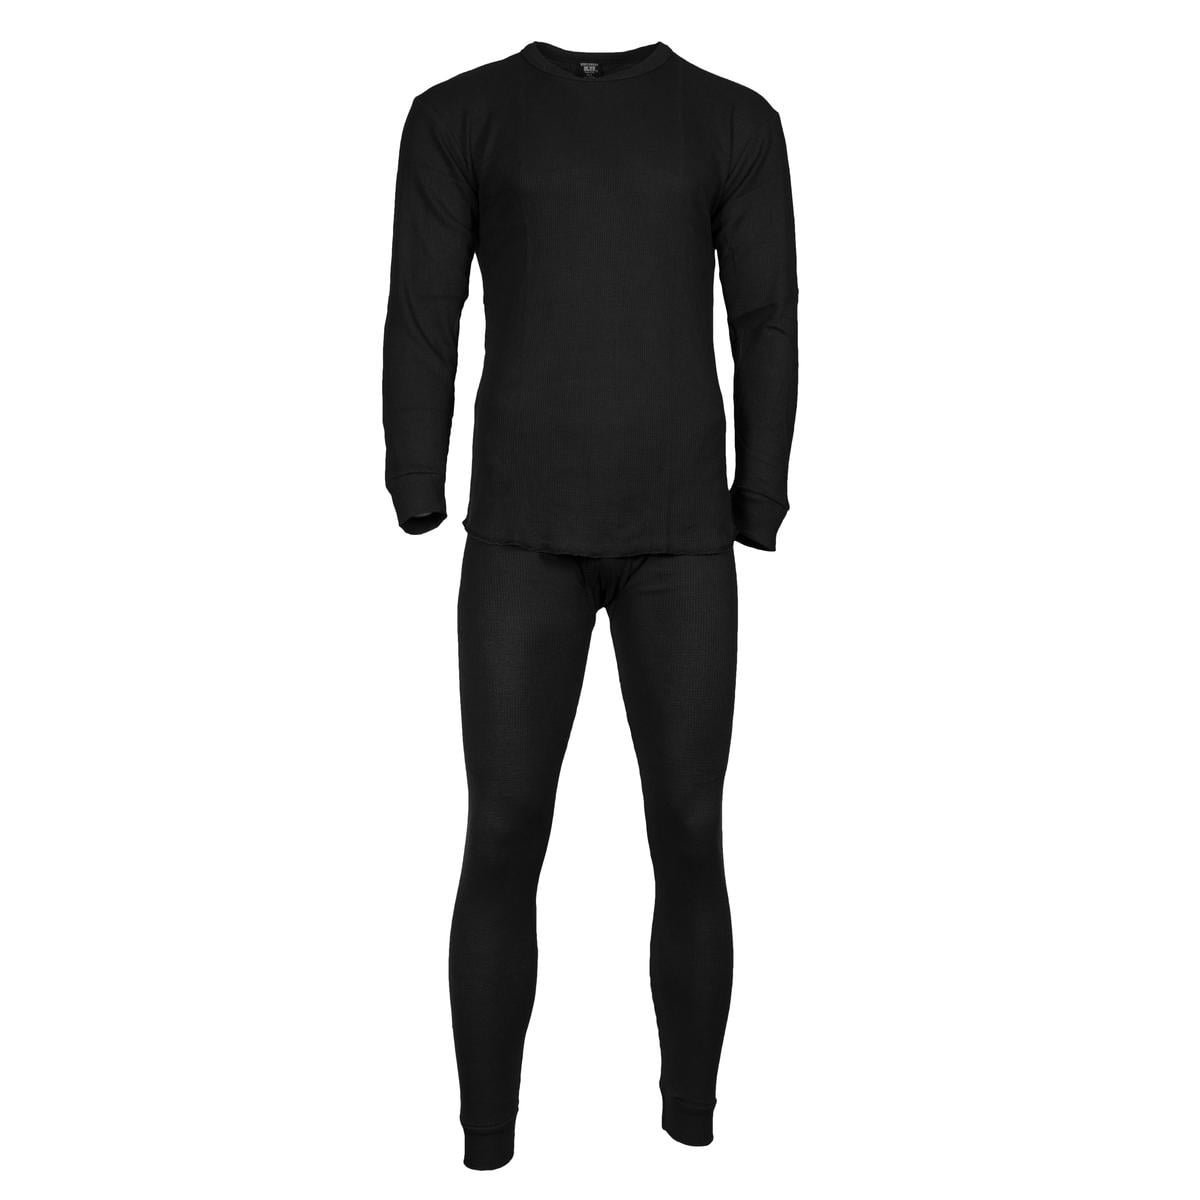 Northwest Blue Mens 2 Piece Performance Thermal Underwear Set by Long Underwear